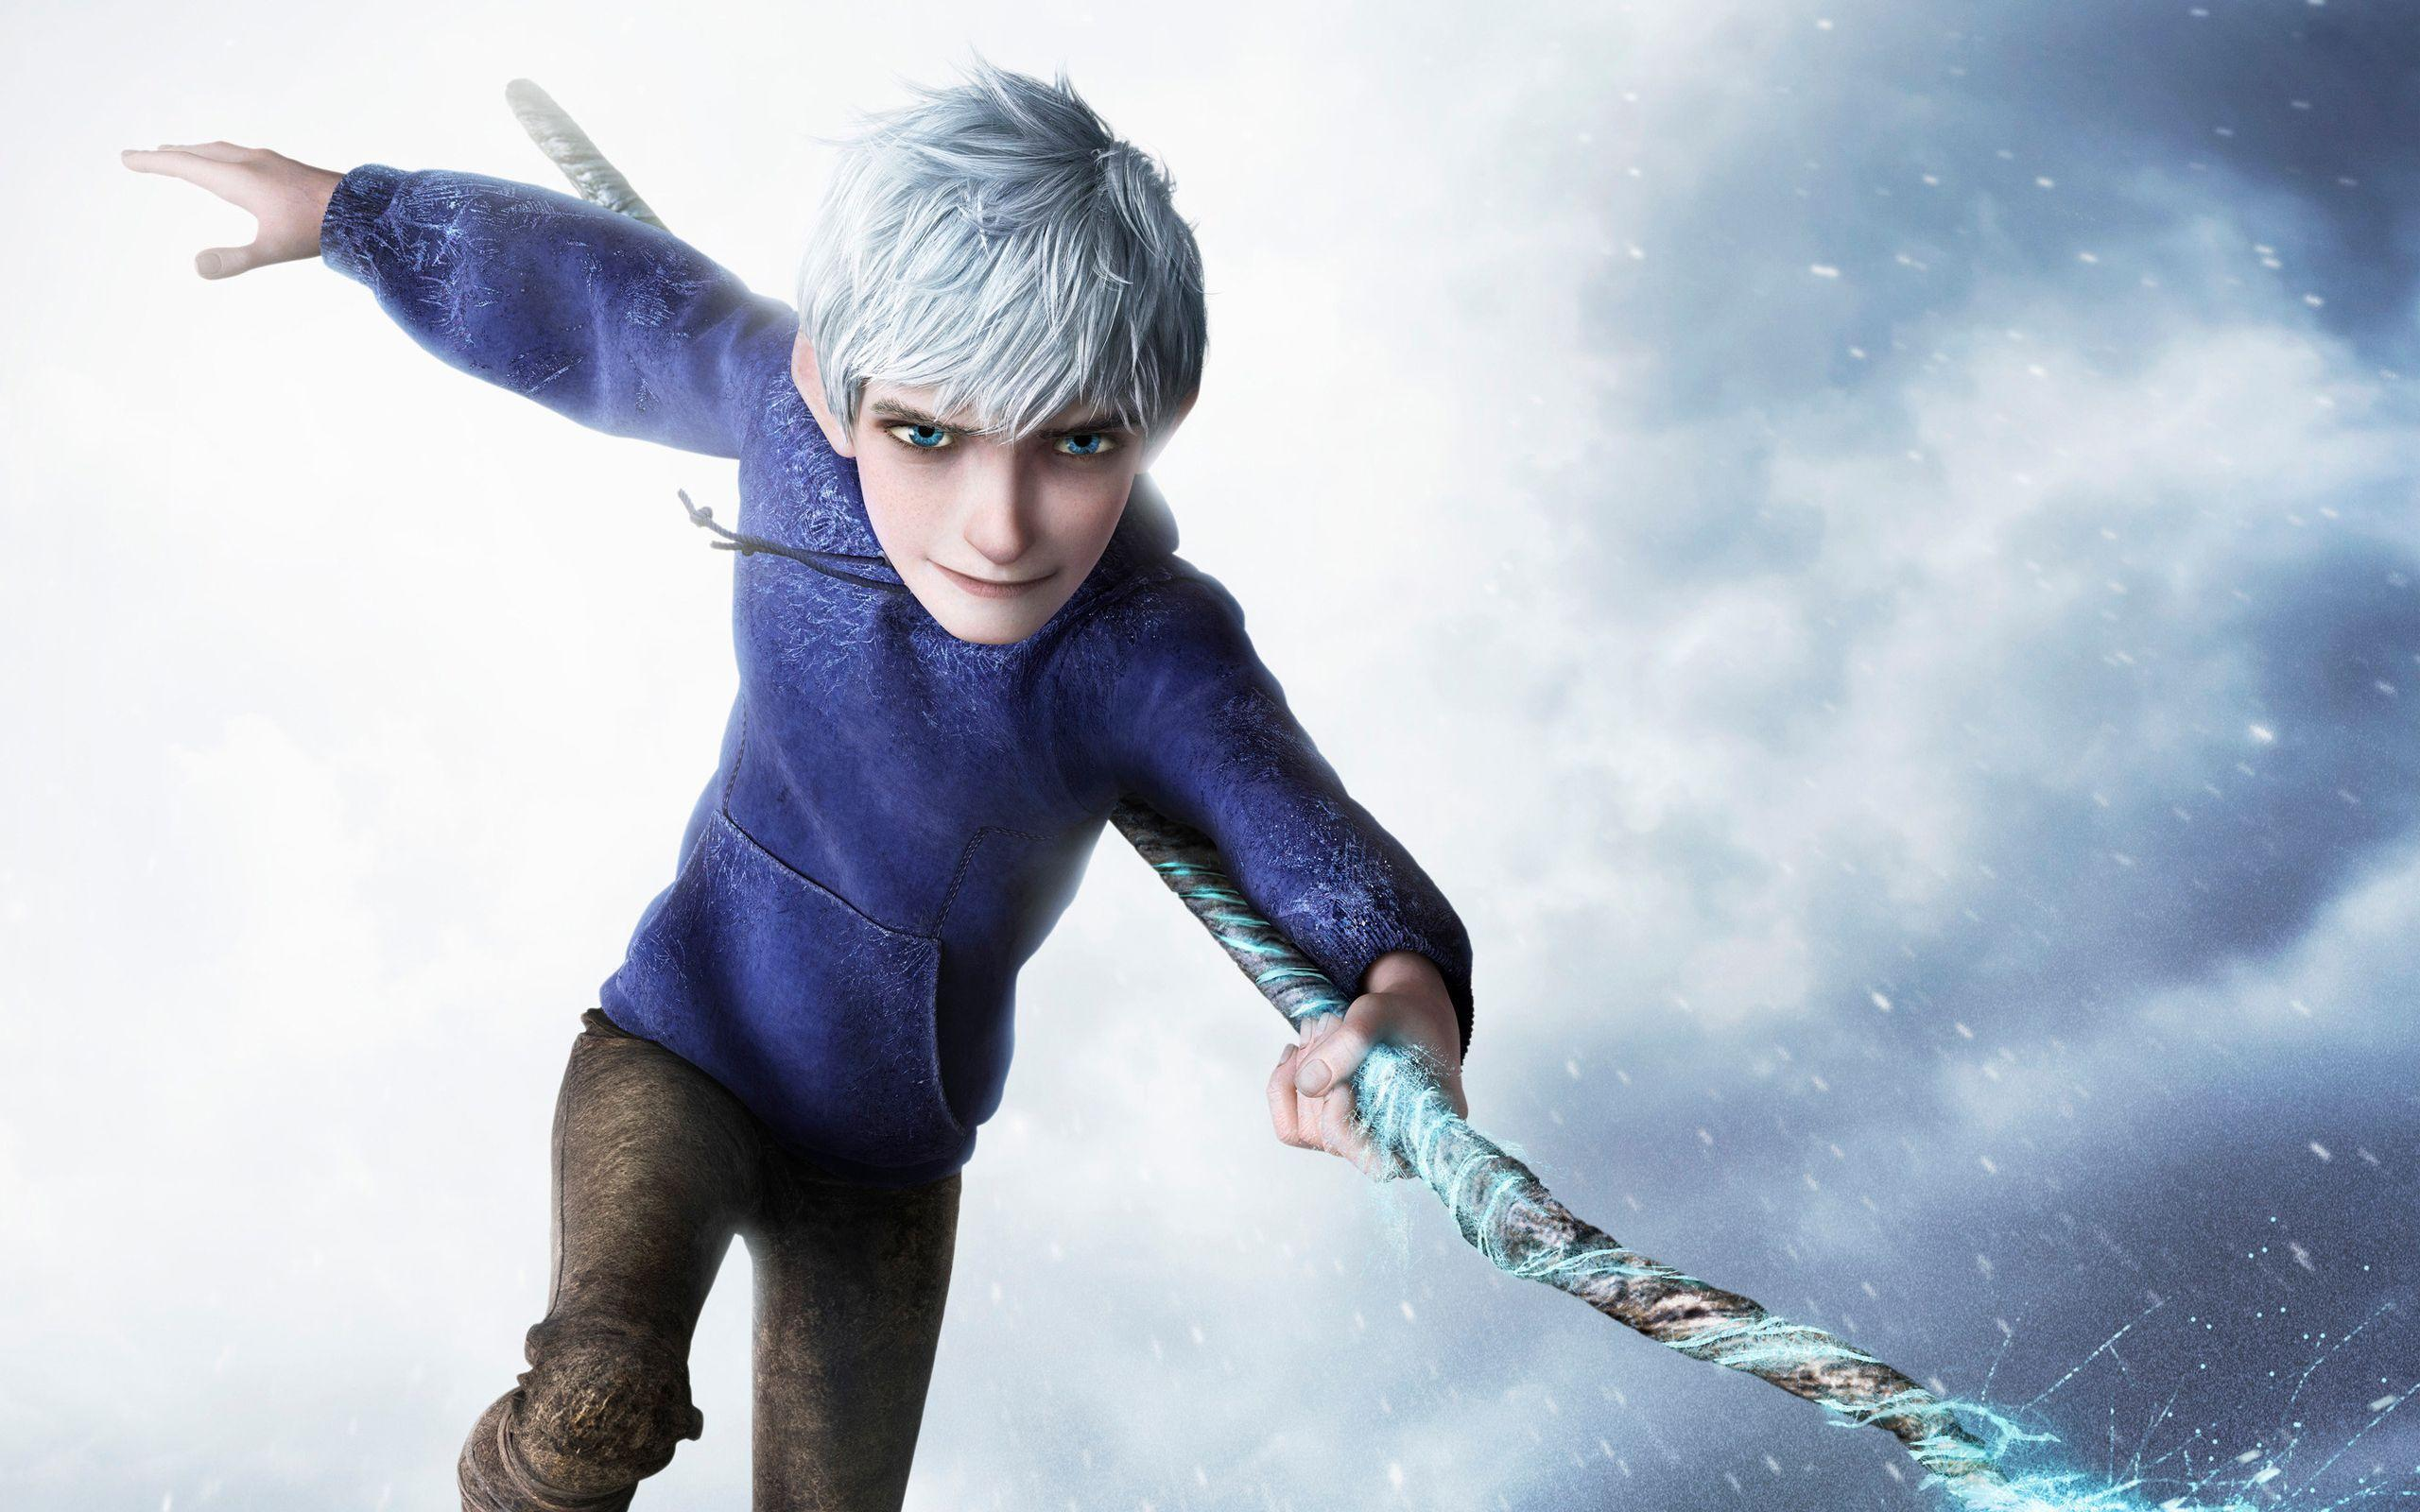 Rise of the guardians wallpapers wallpaper cave 33 rise of the guardians hd wallpapers backgrounds wallpaper abyss thecheapjerseys Images